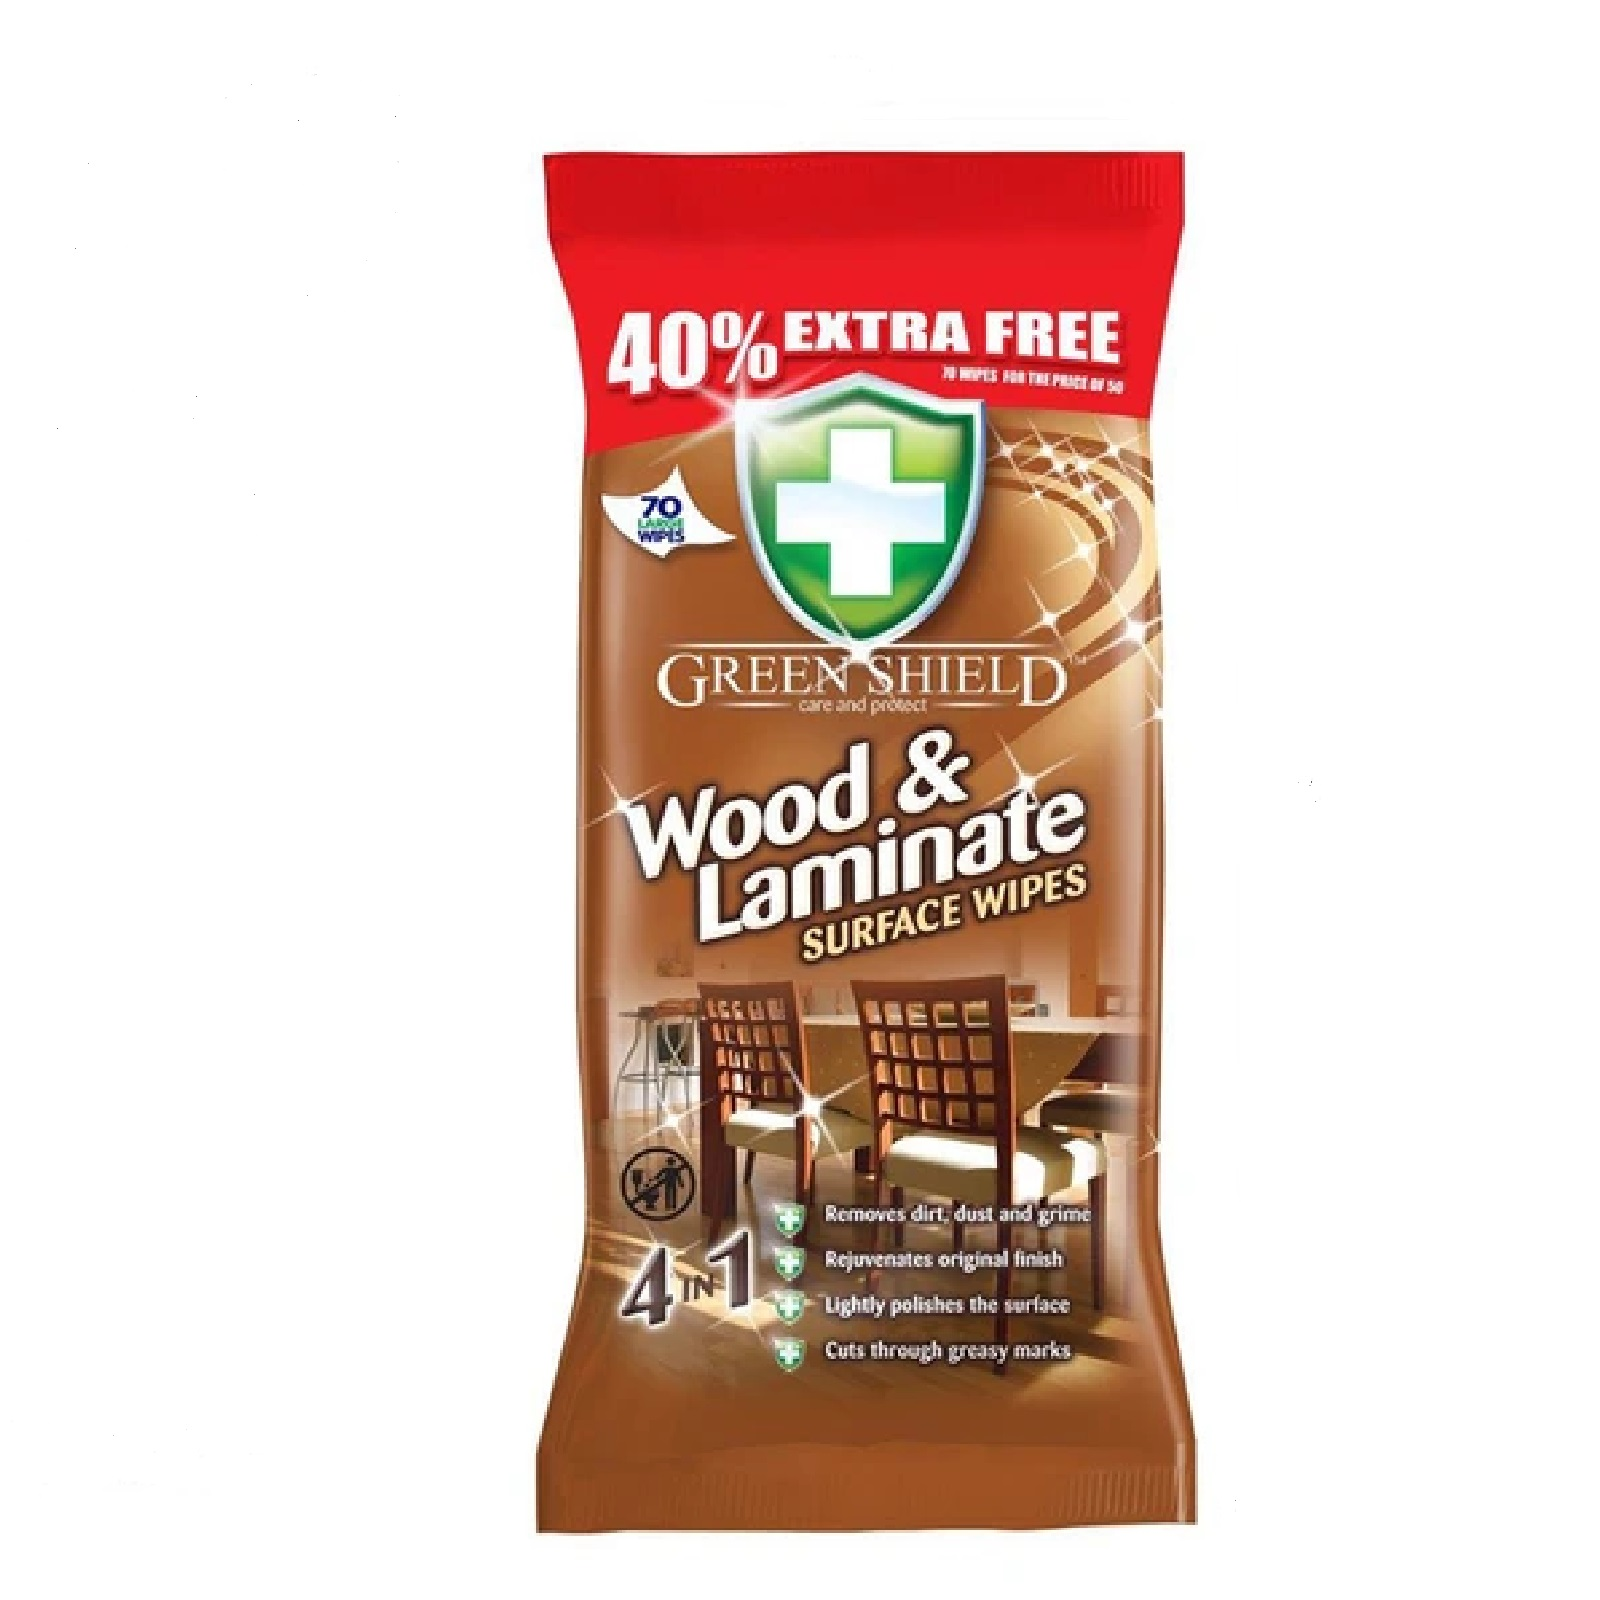 Greenshield Wood Surface Wipes (70 Wipes)